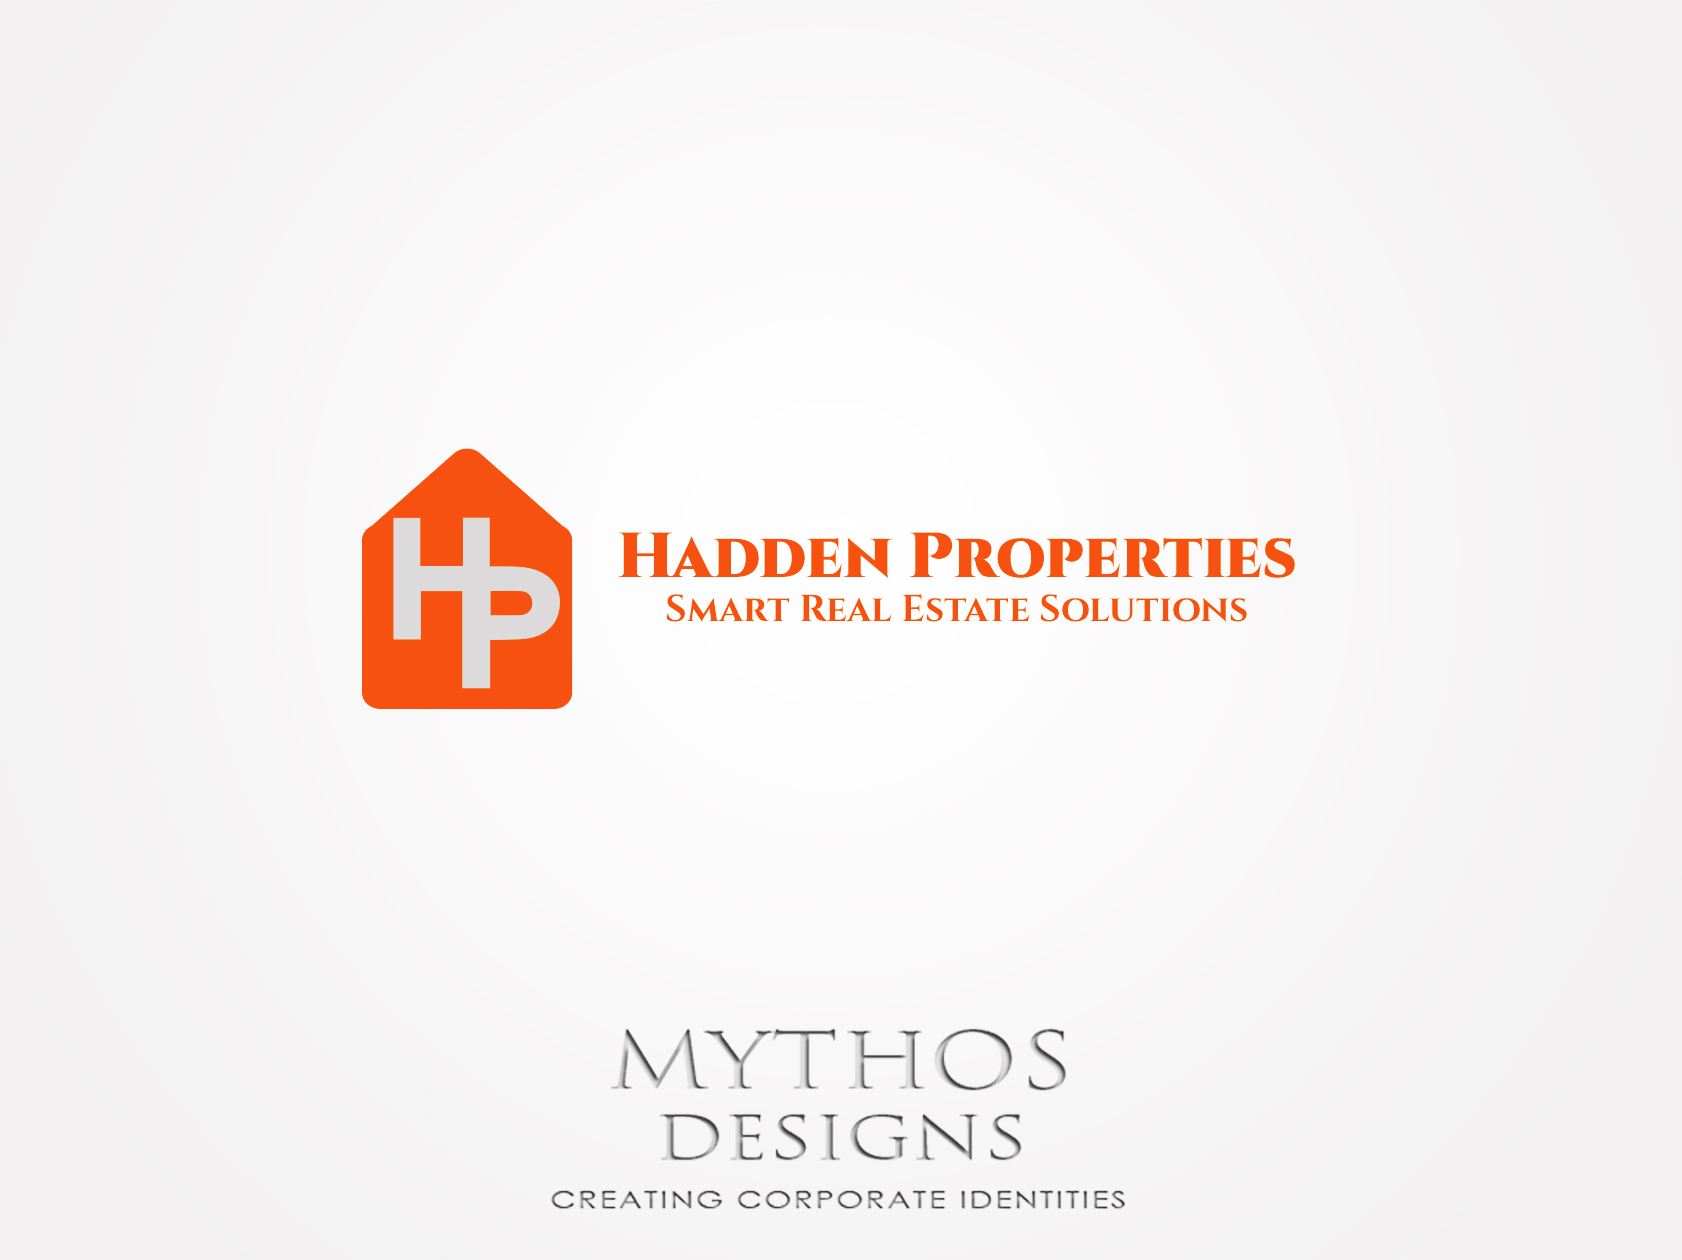 Logo Design by Mythos Designs - Entry No. 70 in the Logo Design Contest Artistic Logo Design for Hadden Properties.